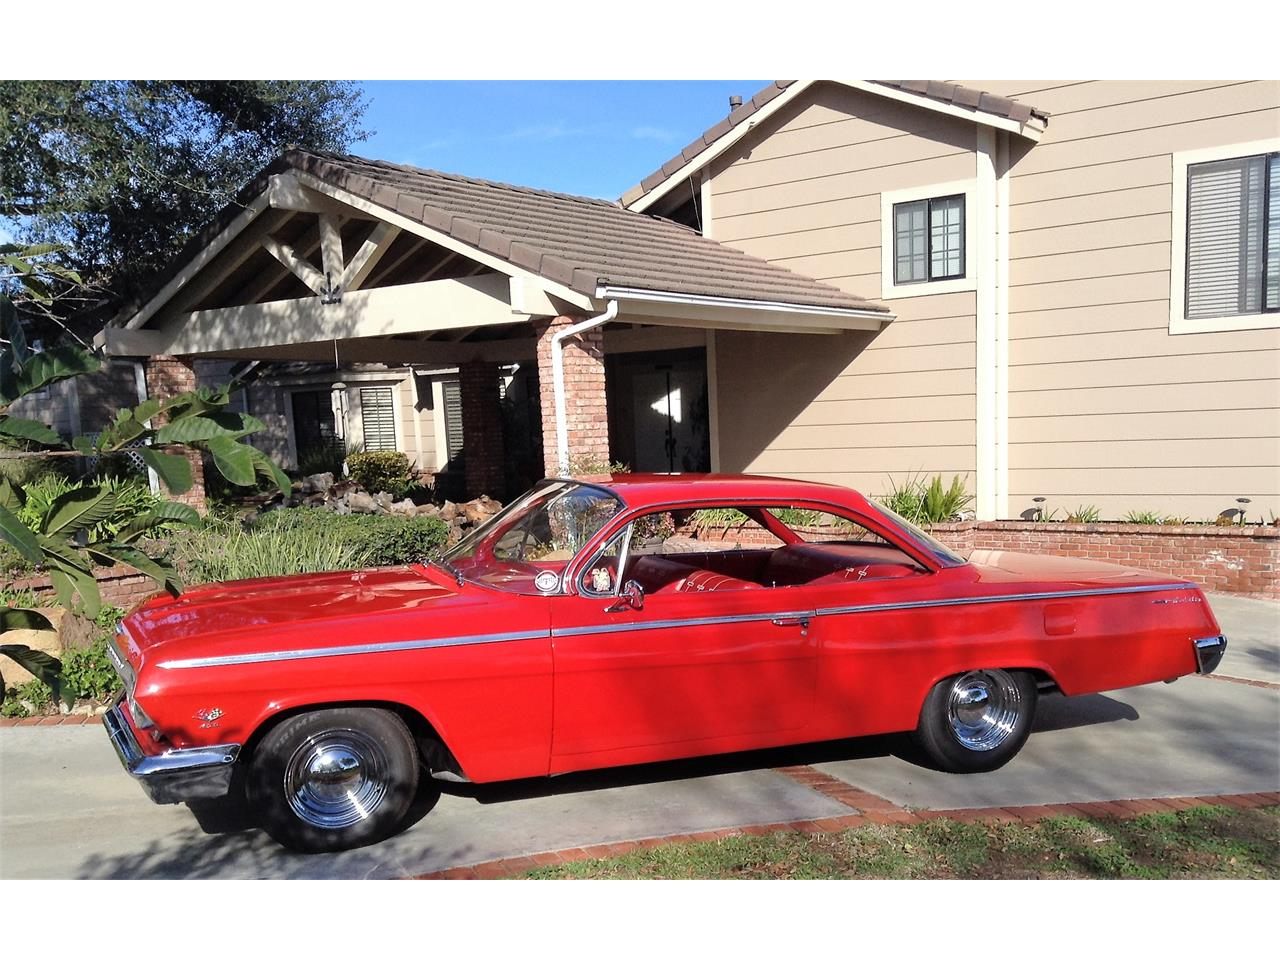 Large Picture of Classic '62 Bel Air located in California - $62,500.00 Offered by a Private Seller - FWFG